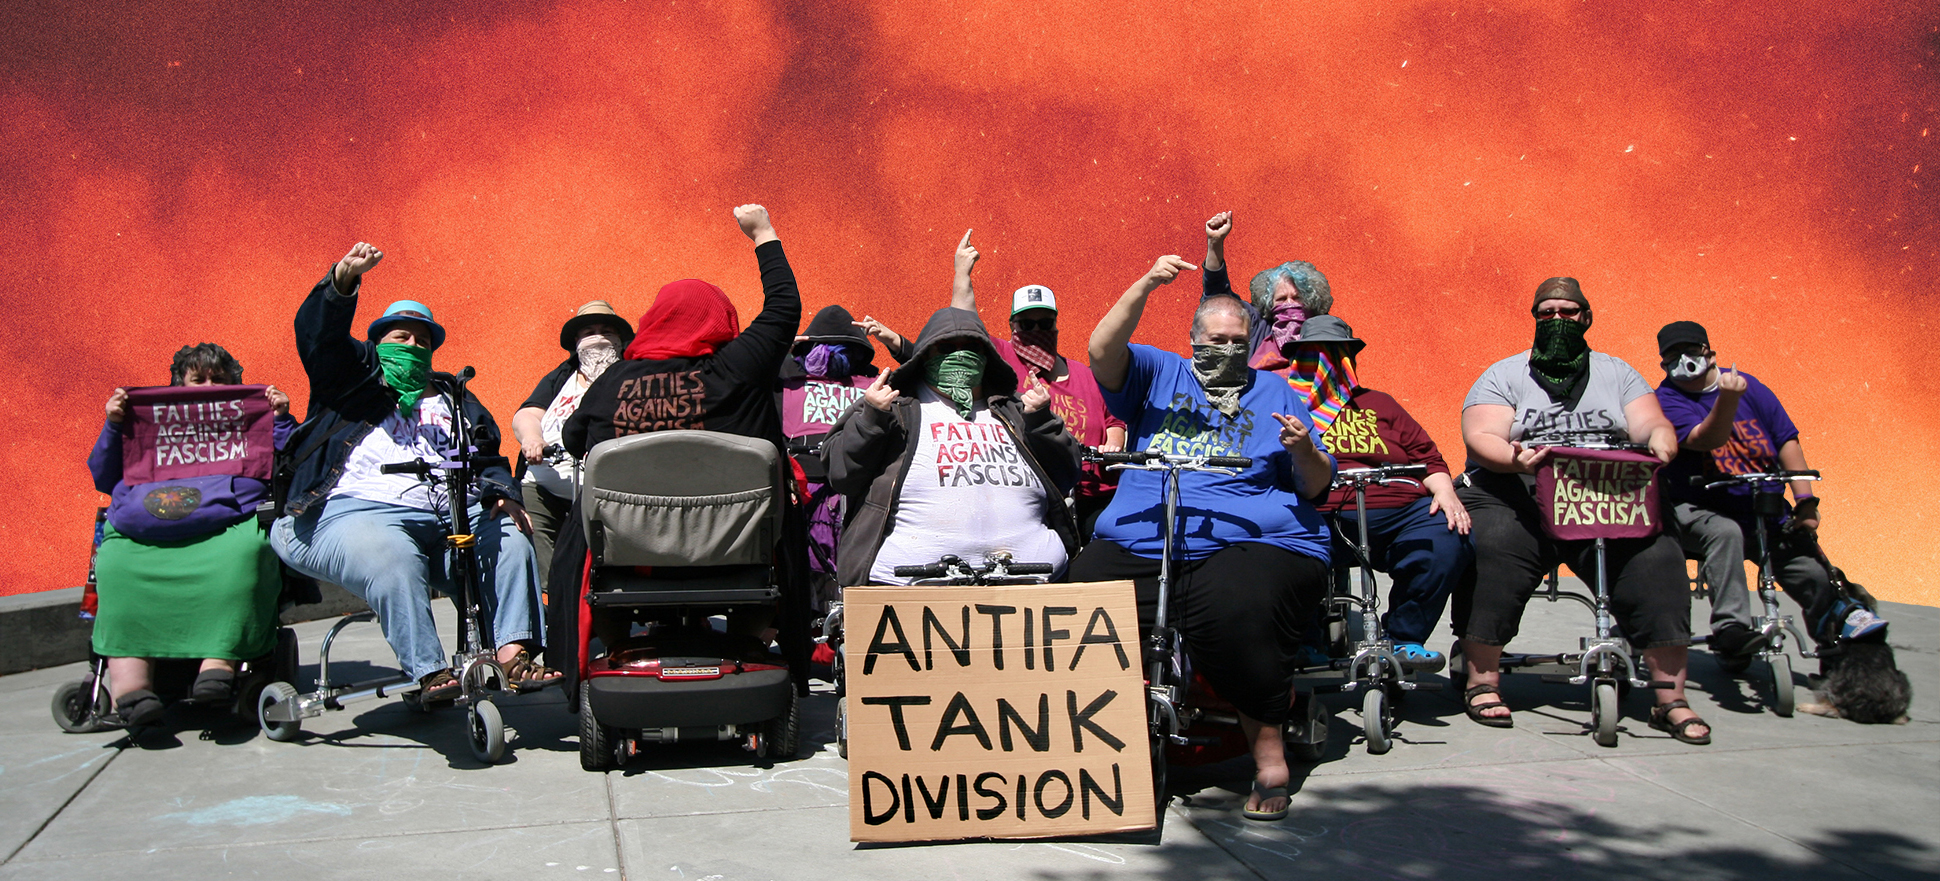 Fatties Against Fascism Rise Up to Close The Camps